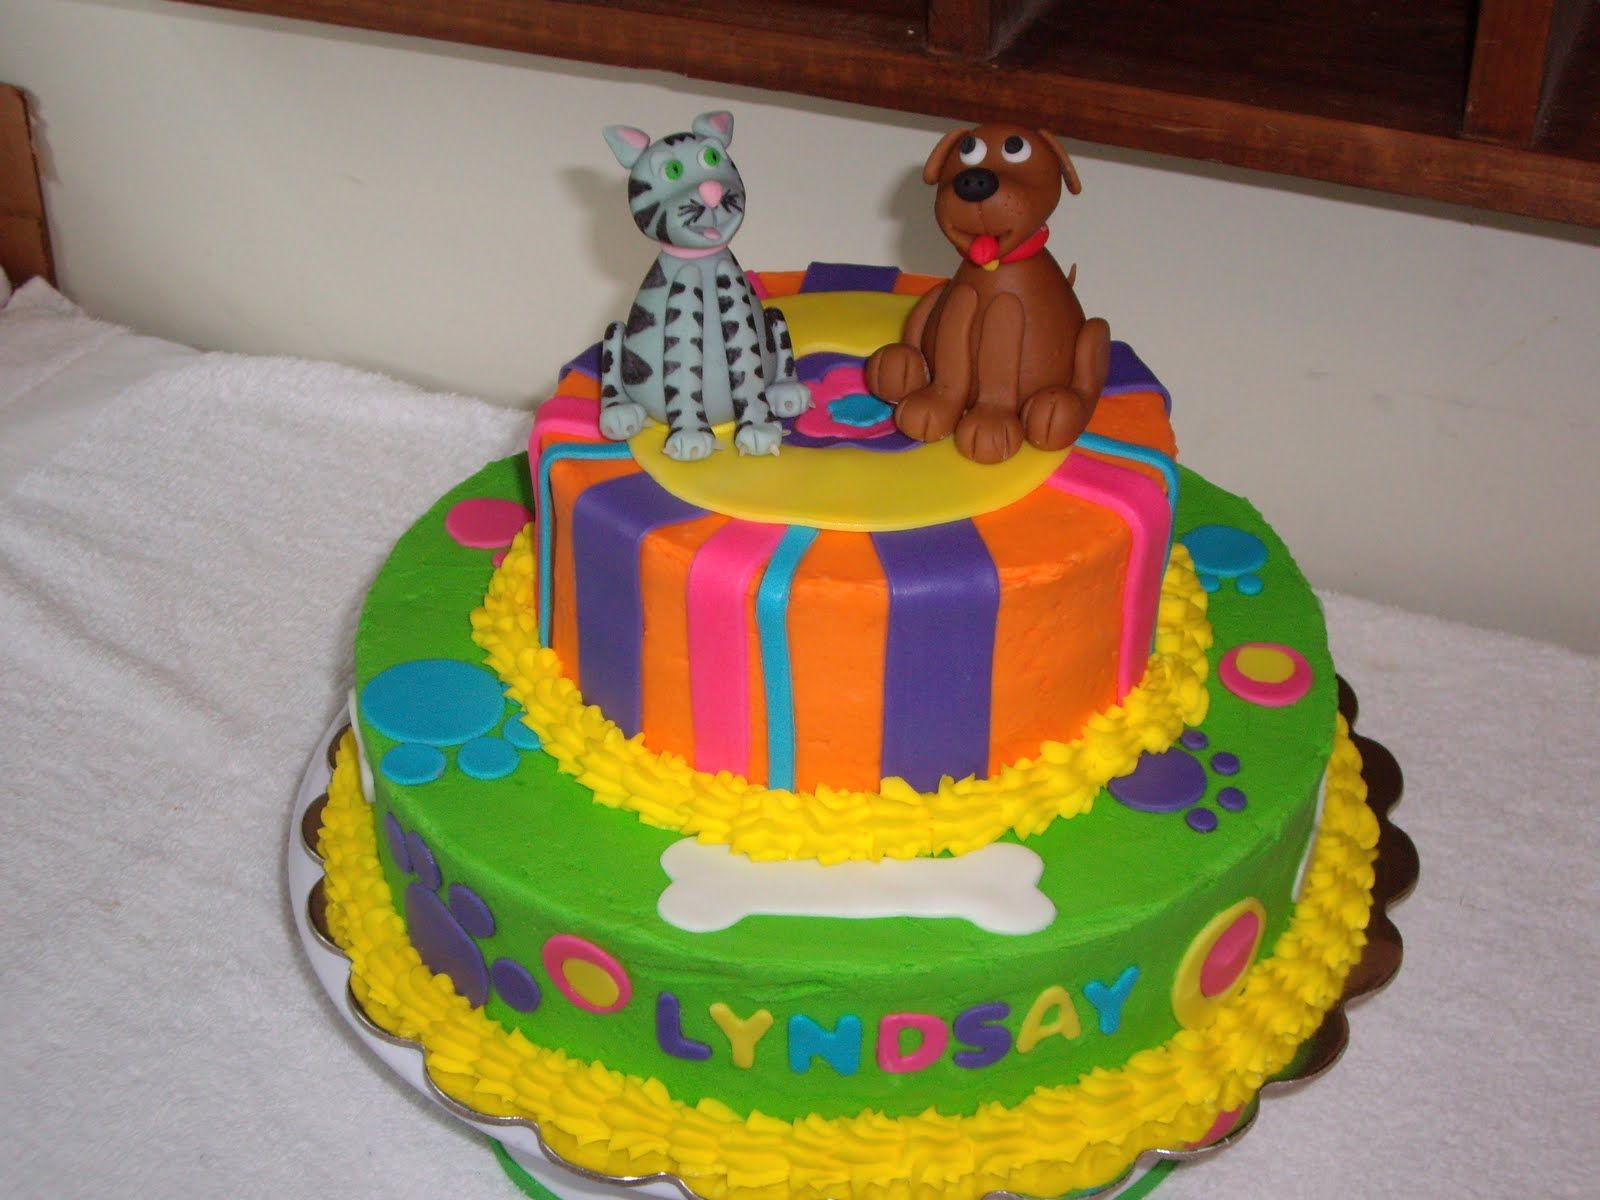 Pictures of Dog Cakes http://customcakesbychristy.blogspot.com/2011/03/lyndsays-cat-dog-cake.html